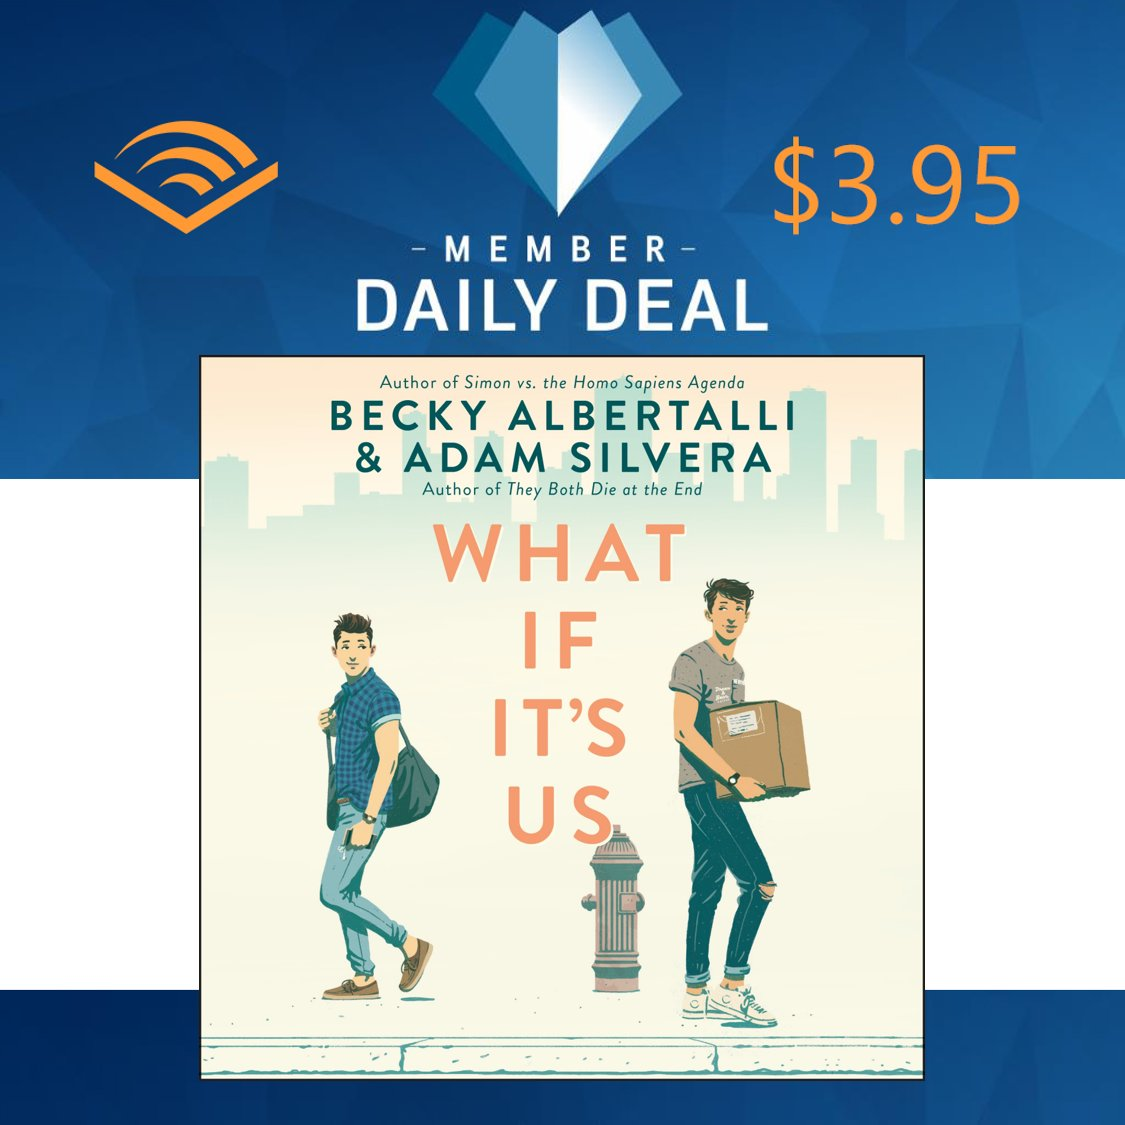 bestselling authors @beckyalbertalli and @AdamSilvera combine their talents in this funny, heartfelt collaboration about two boys who can't decide if the universe is pushing them together or apart. Get WHAT IF IT'S US for $3.95 today at @audible_com https://t.co/f39usTiSX6 https://t.co/BDPcvEcicM